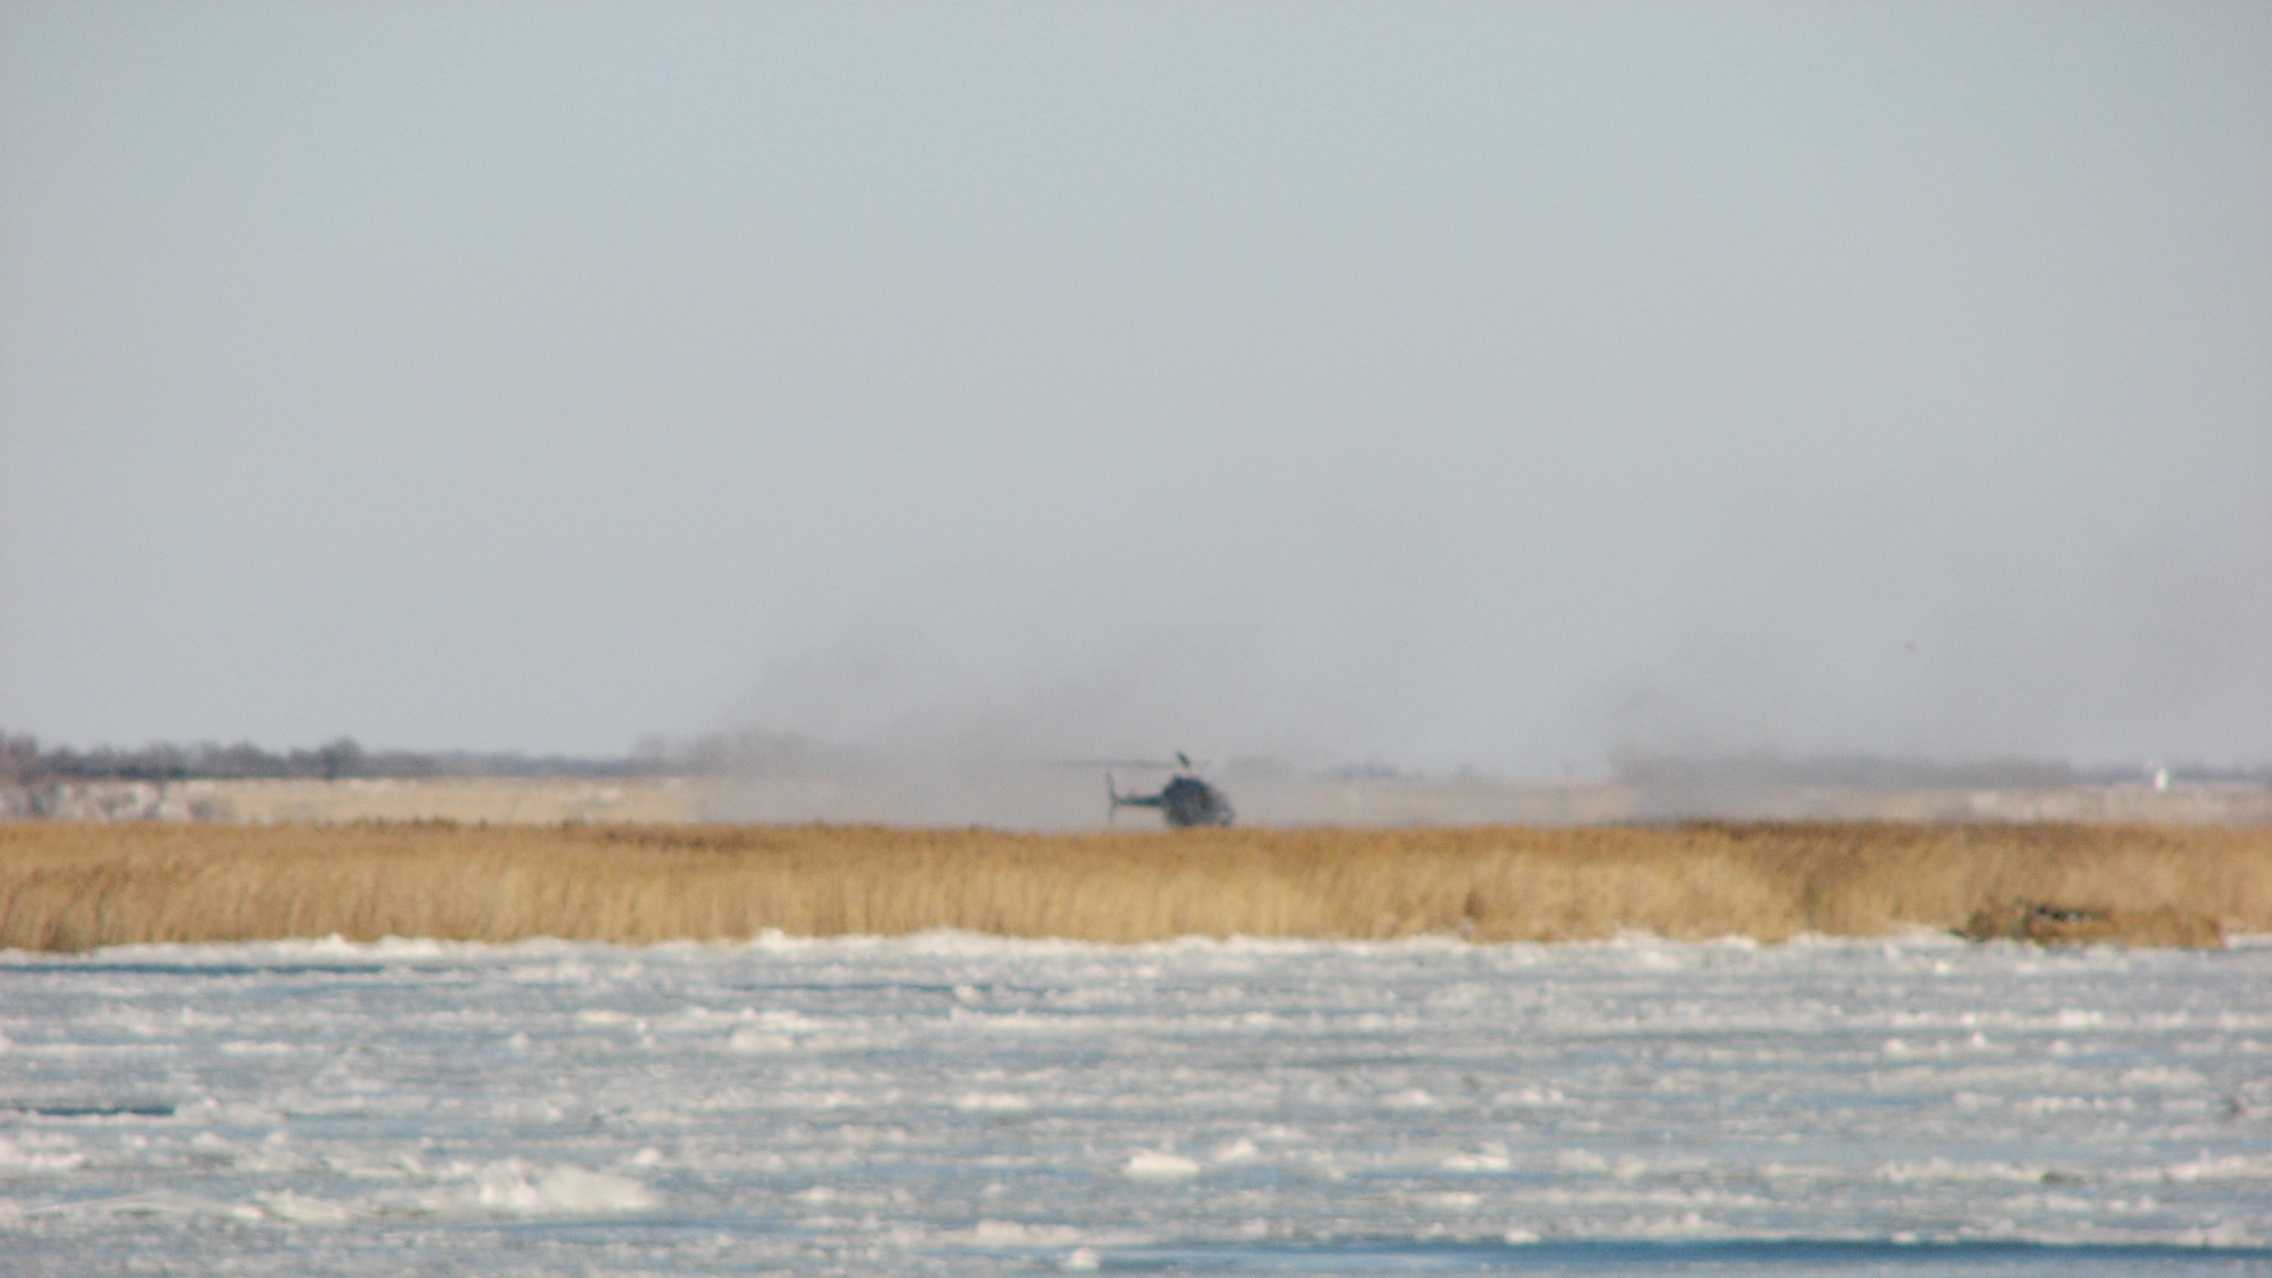 NSP helicopter landing on the marsh island to rescue the hunters.